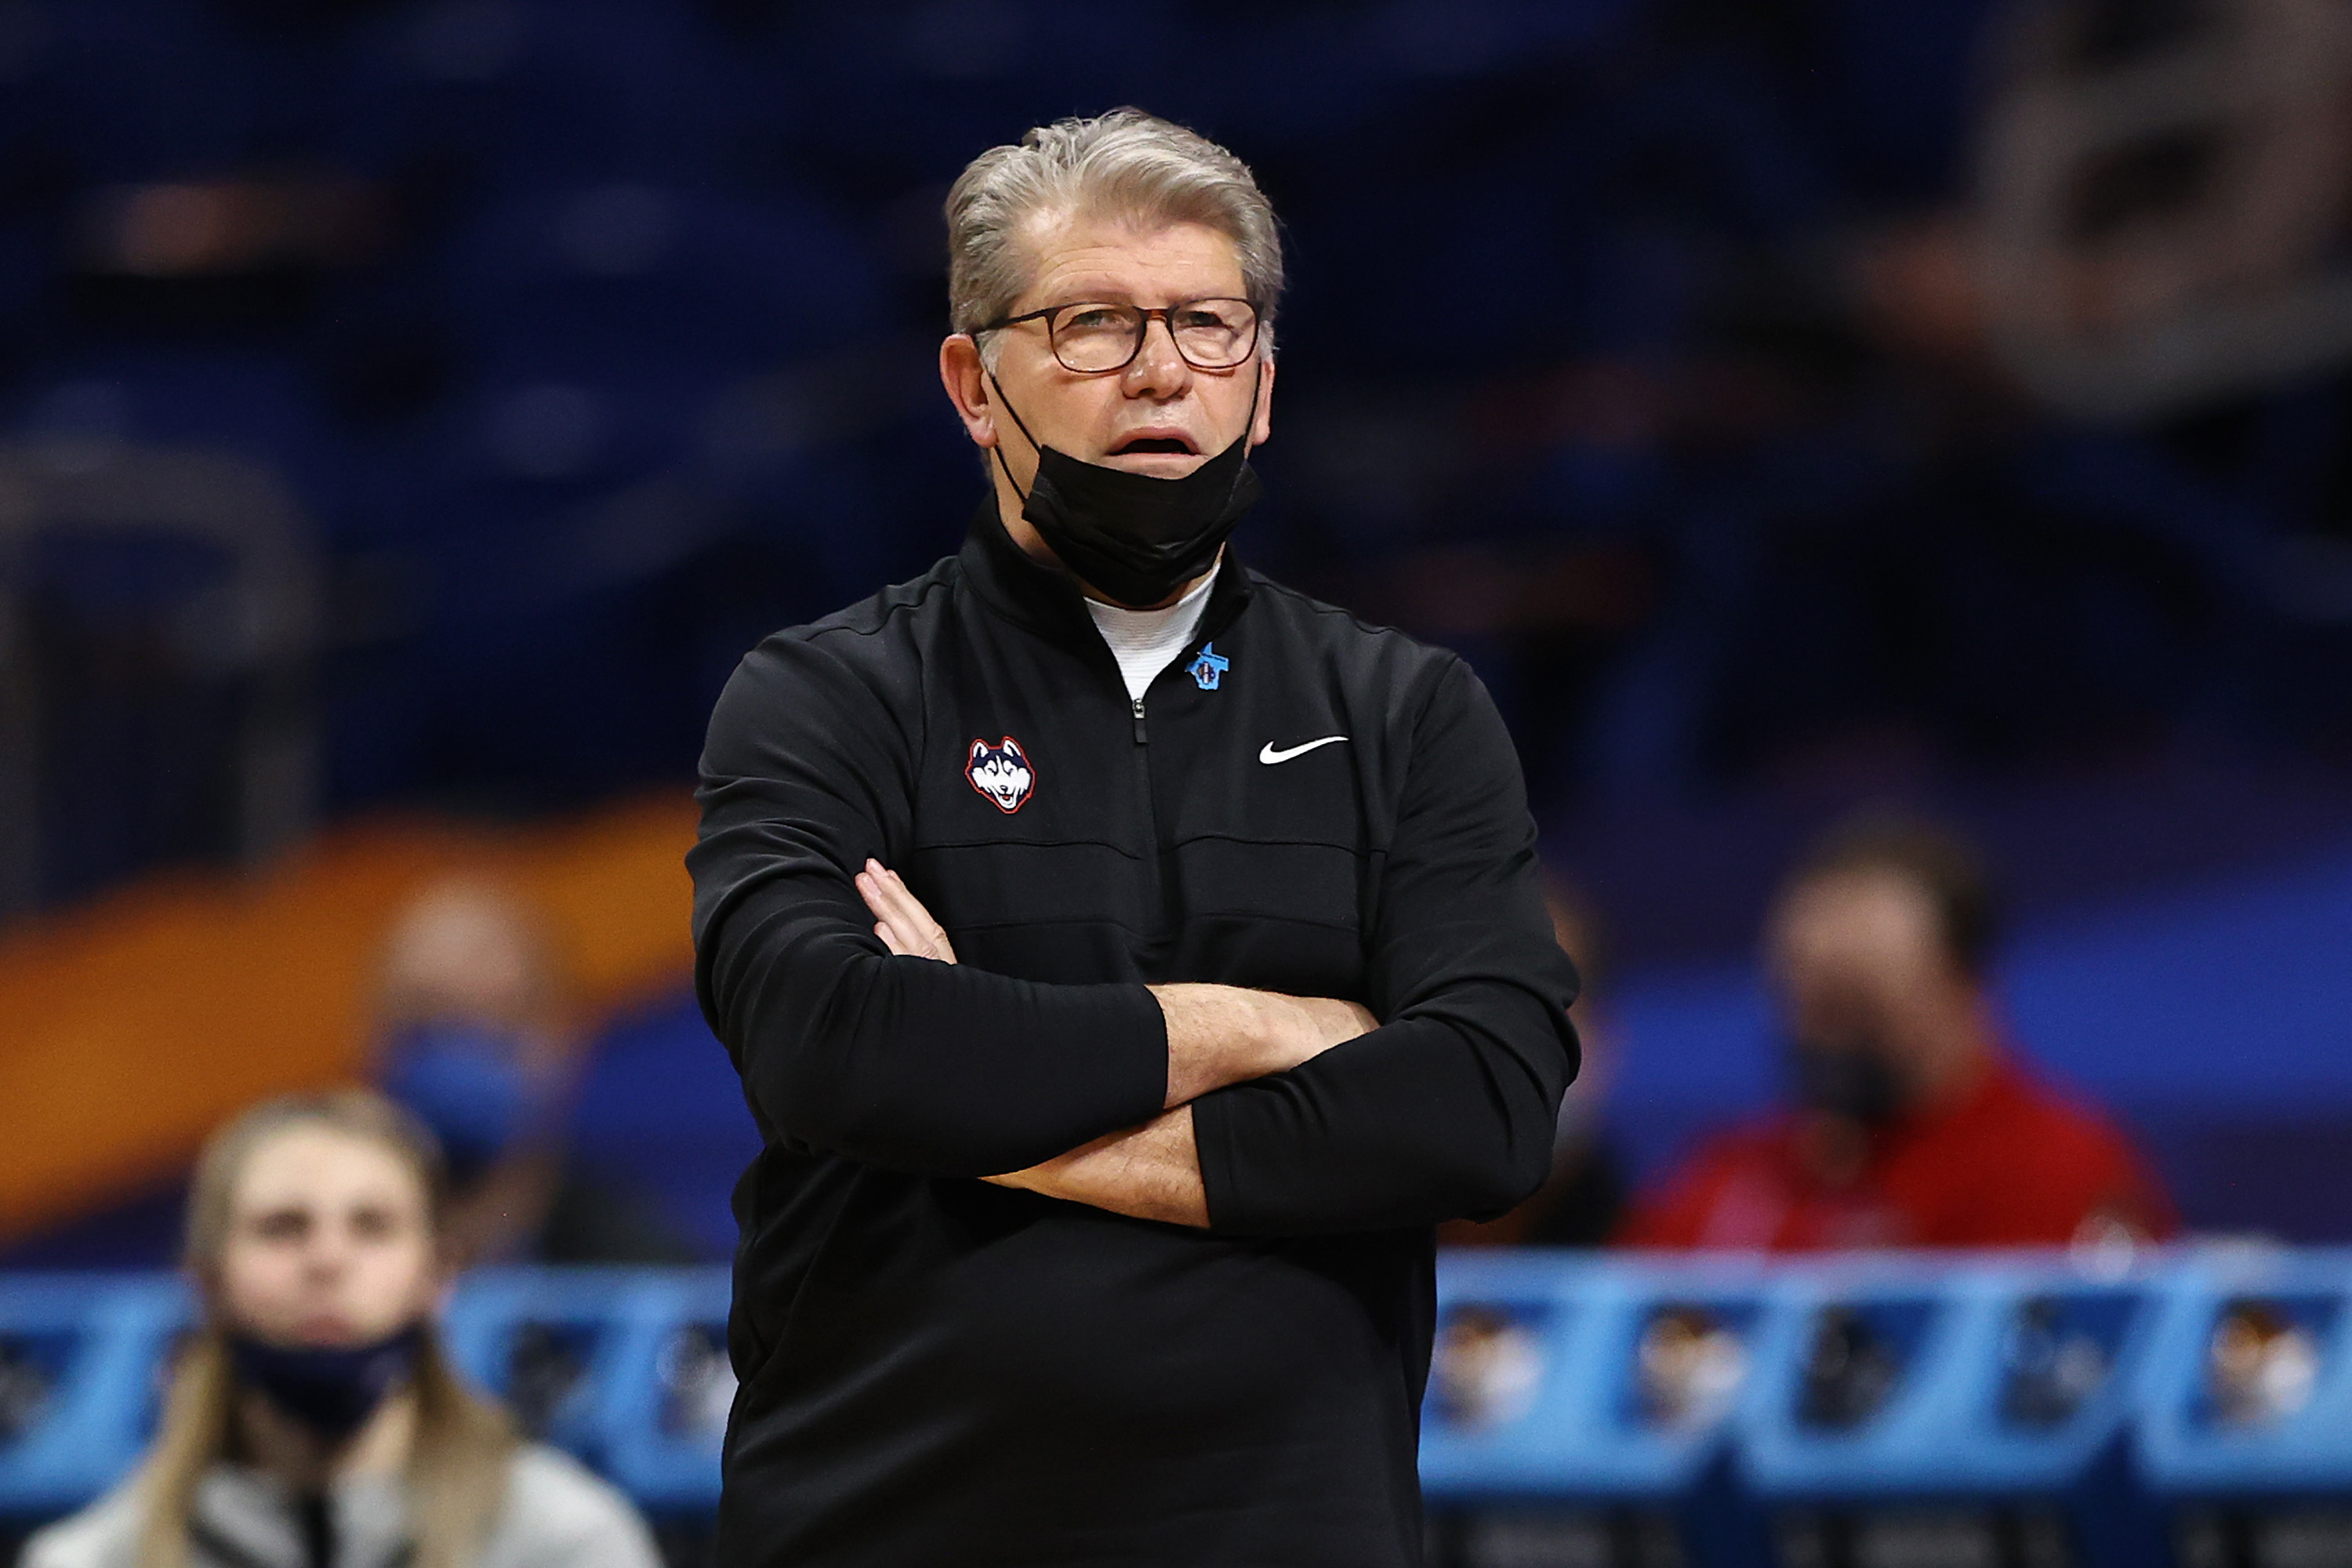 Geno Auriemma of the Connecticut Huskies looks on during Final Four